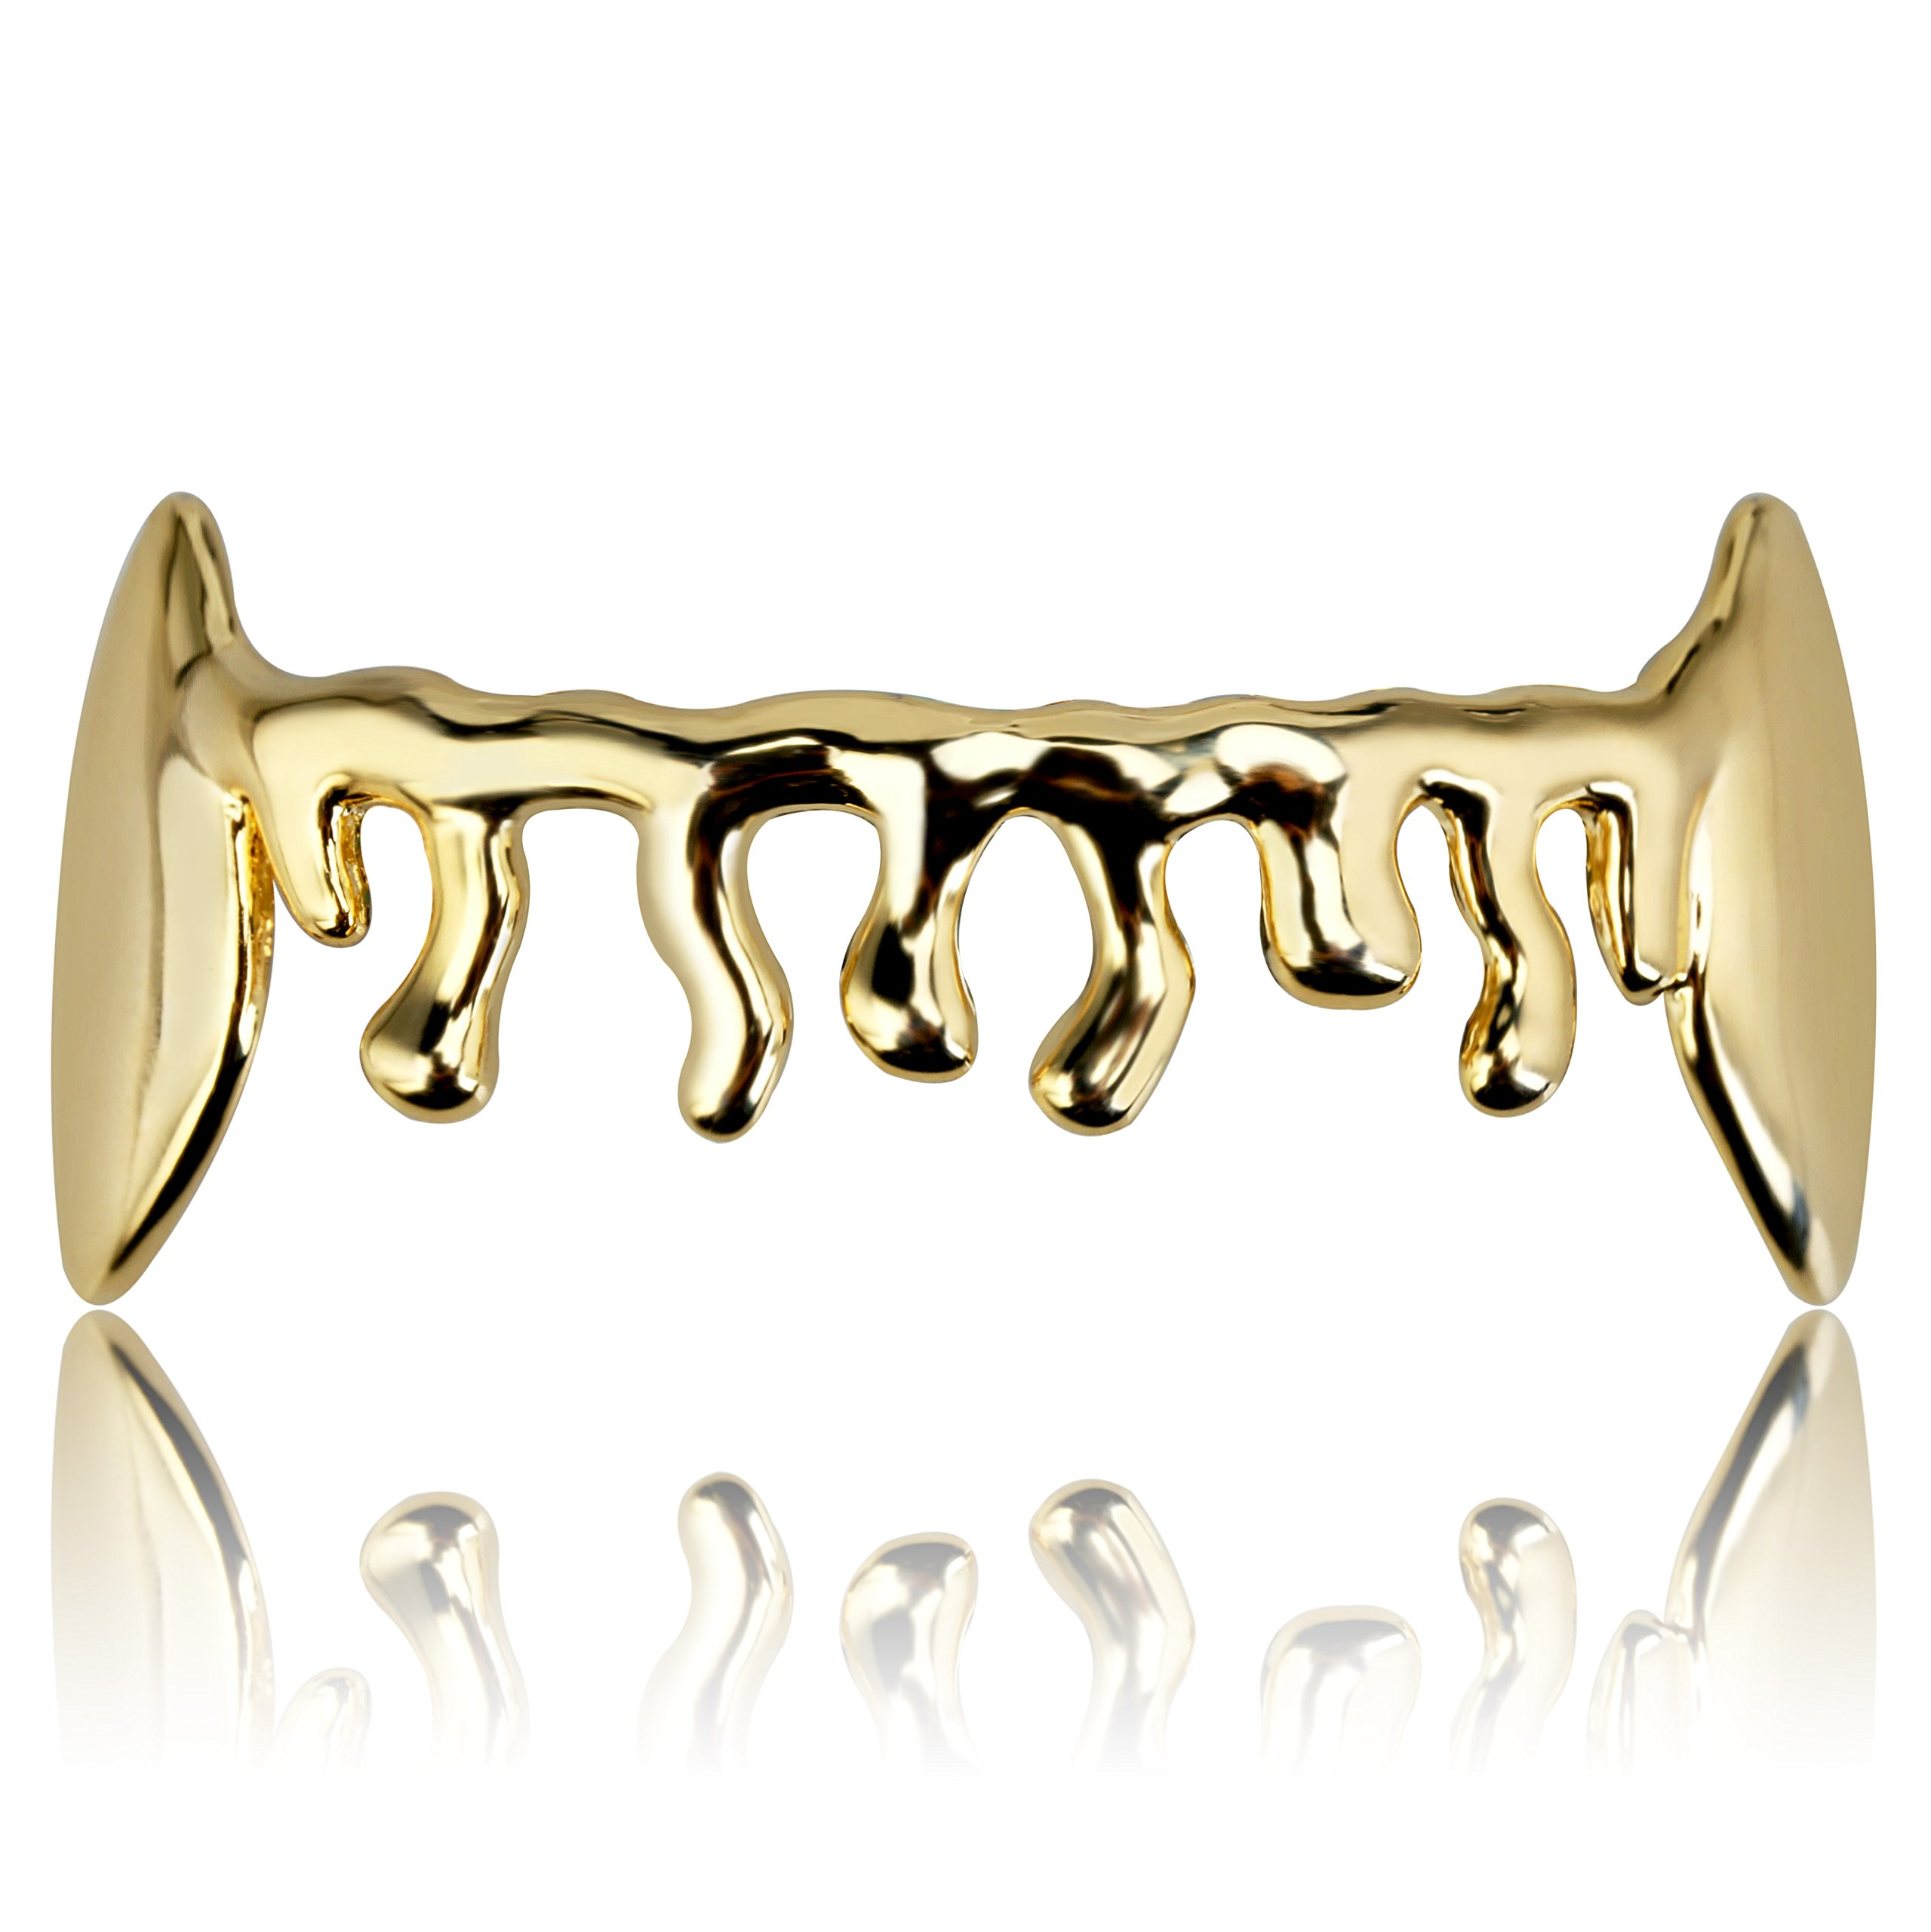 TOPGRILLZ Hip Hop 14K Gold and Silver Plated Custom Drop Vampire Dracula Bottom Grillz for Your Teeth (Gold)